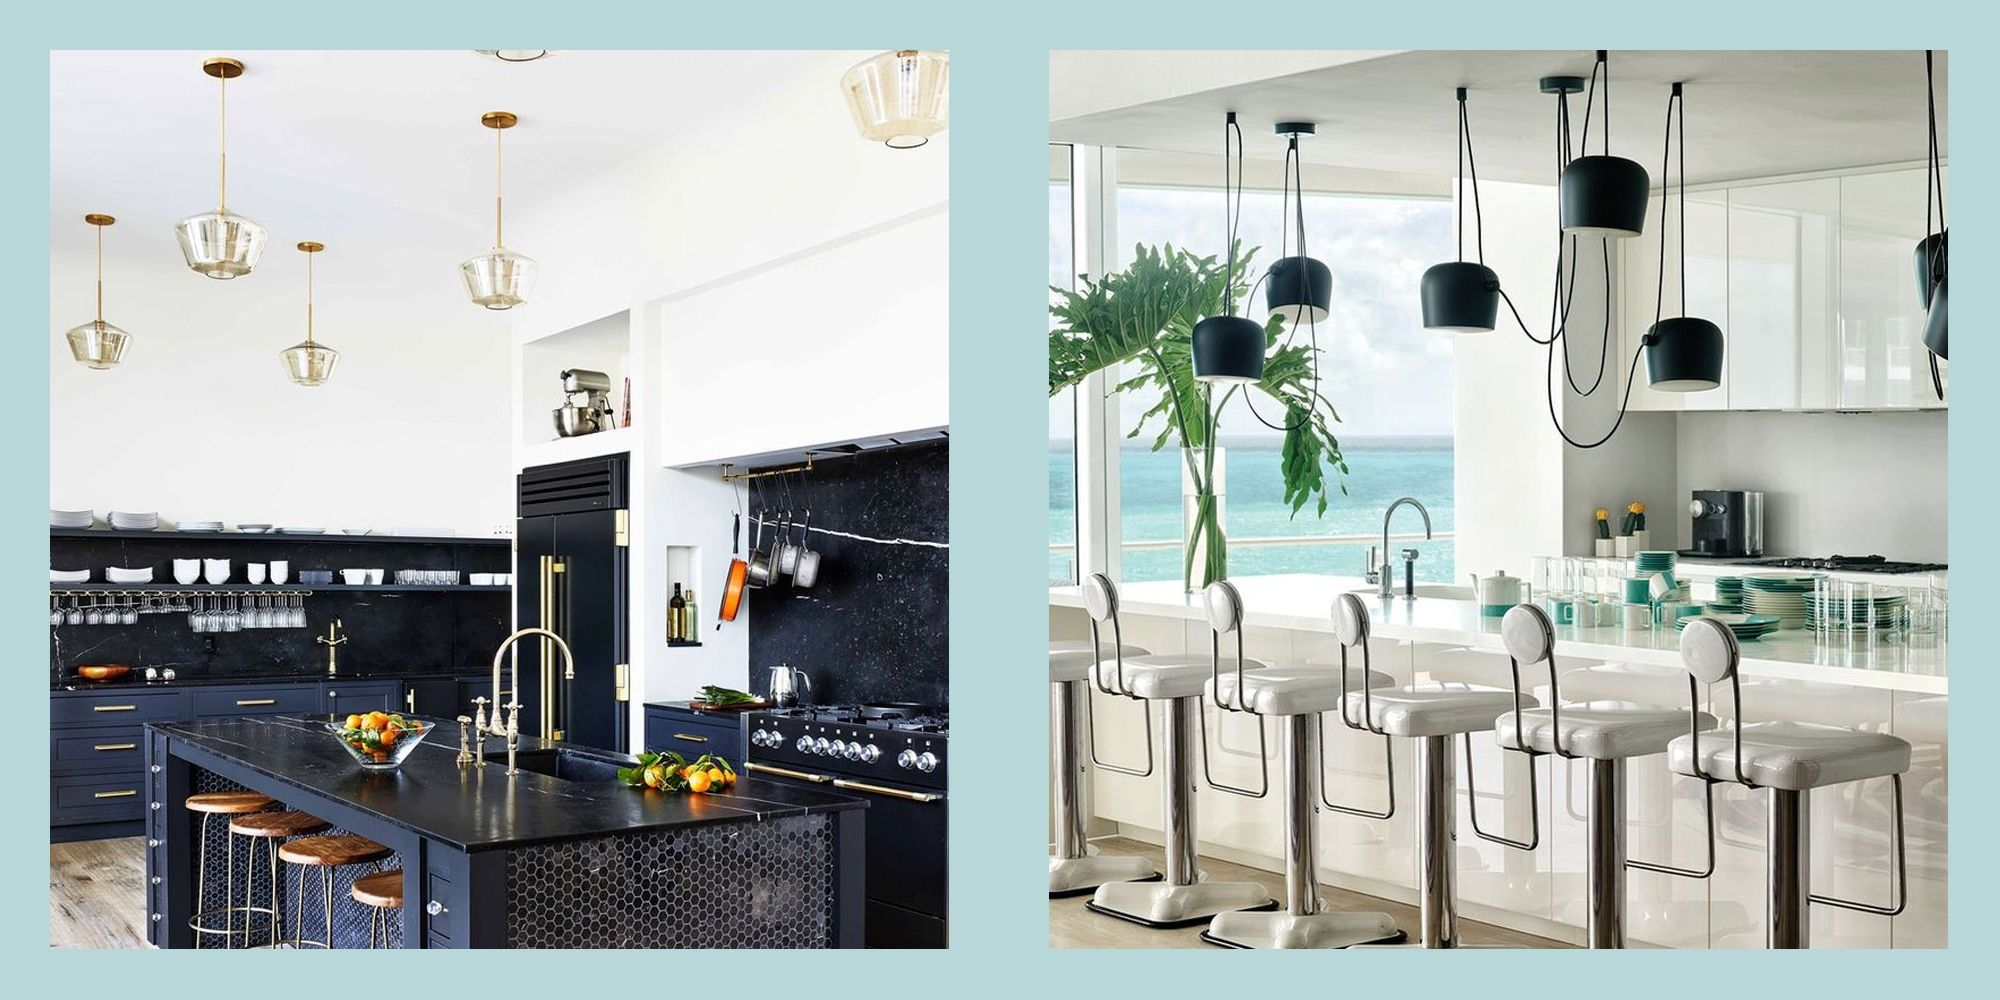 5 Gorgeous Kitchen Lighting Ideas - Modern Light Fixtures